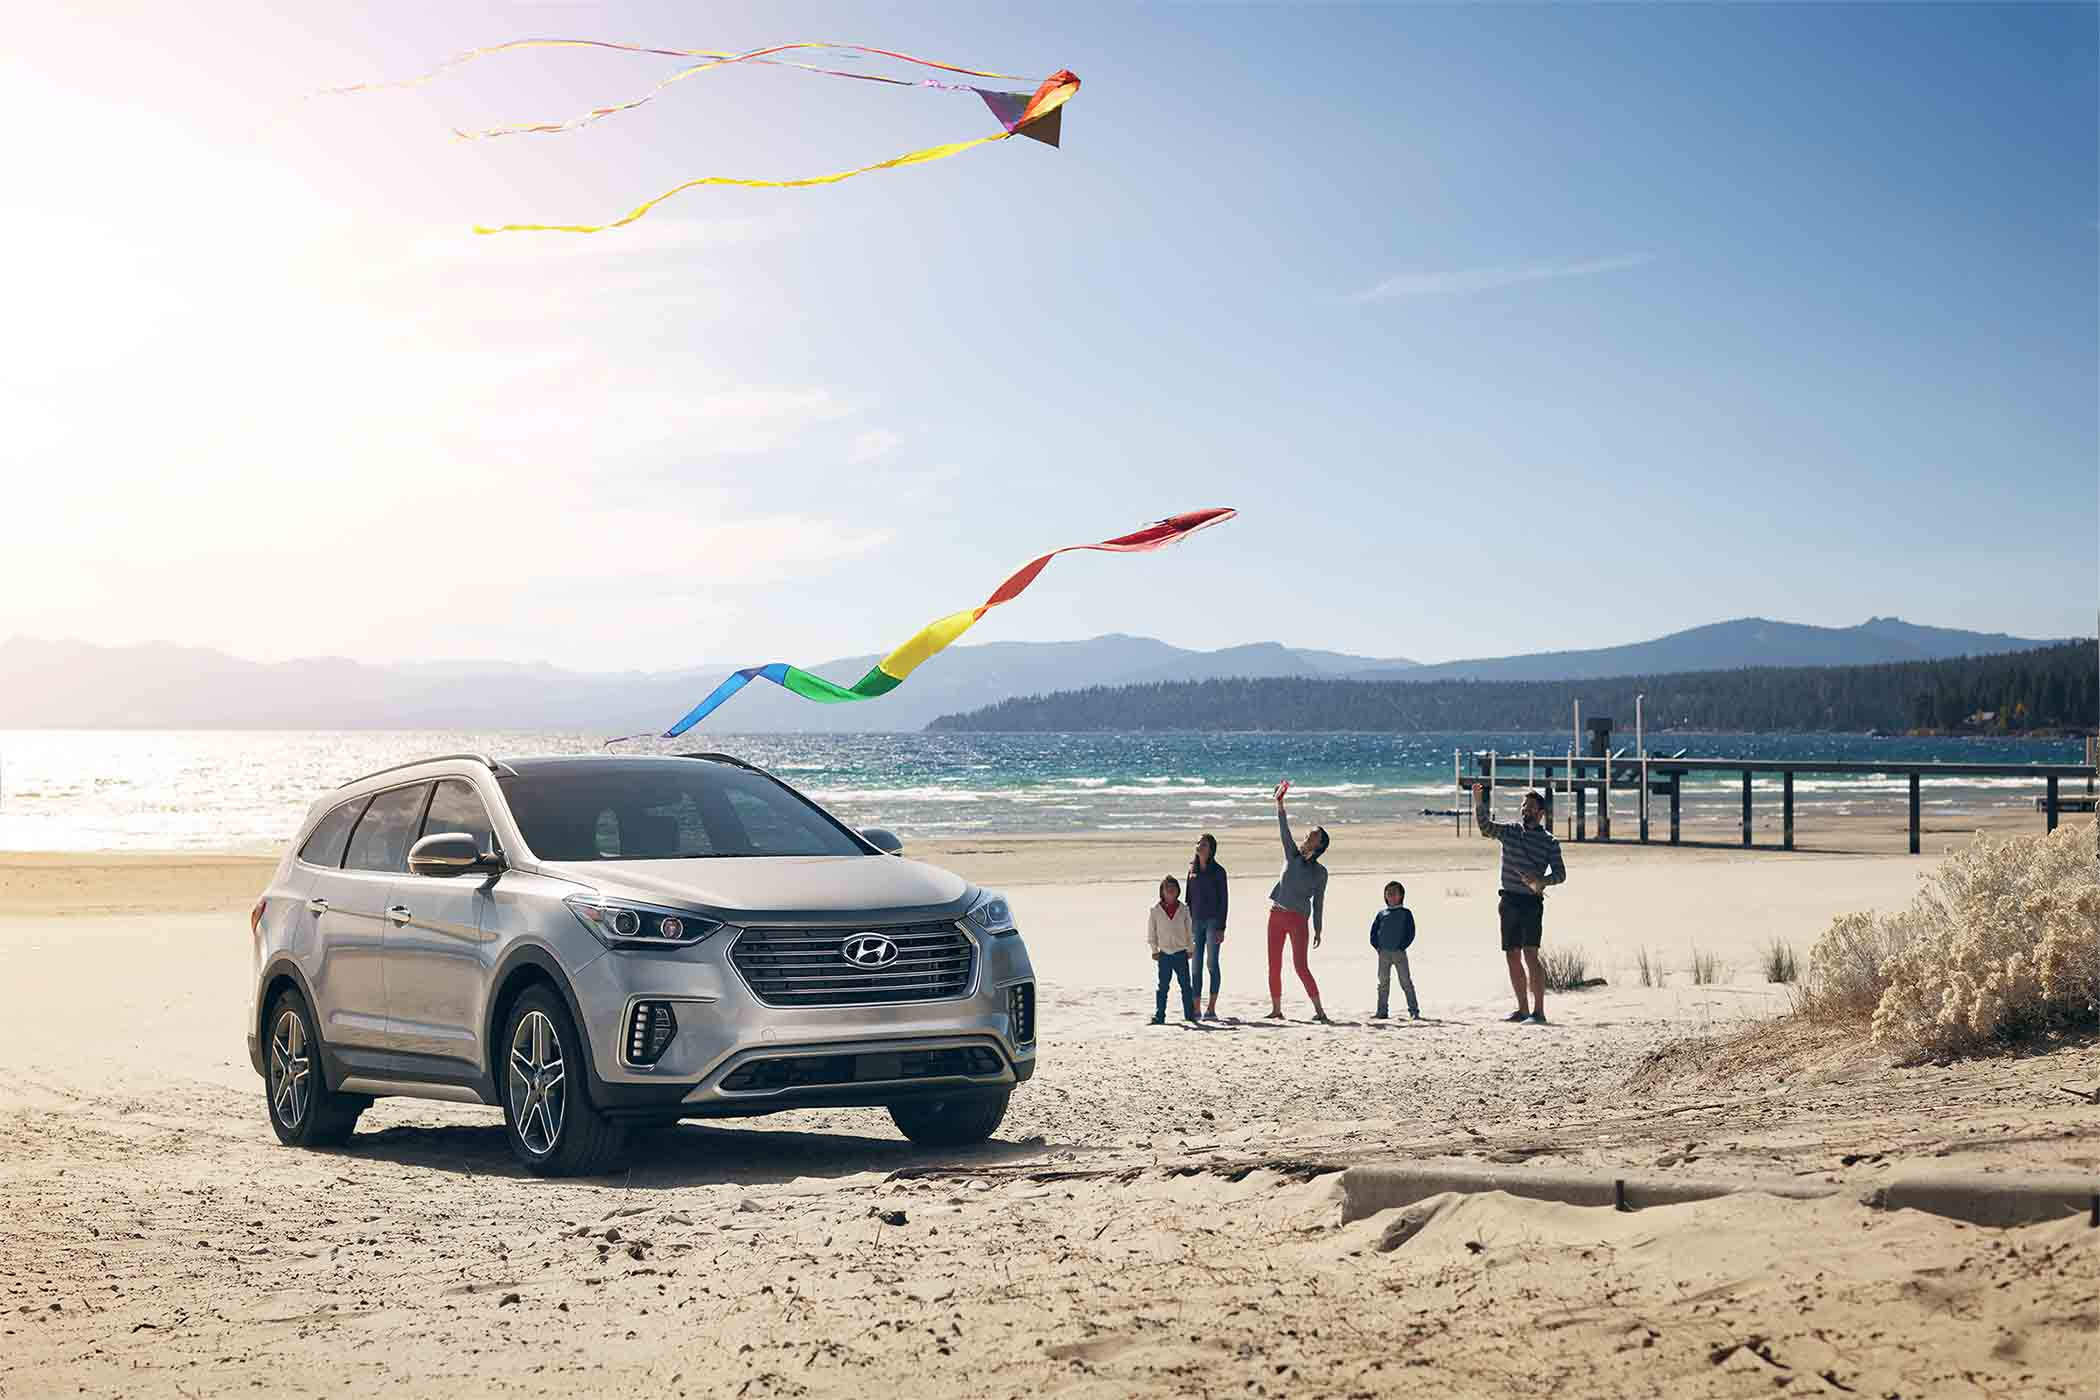 wright surprising blog sonata facts pa the k hyundai in dealers about